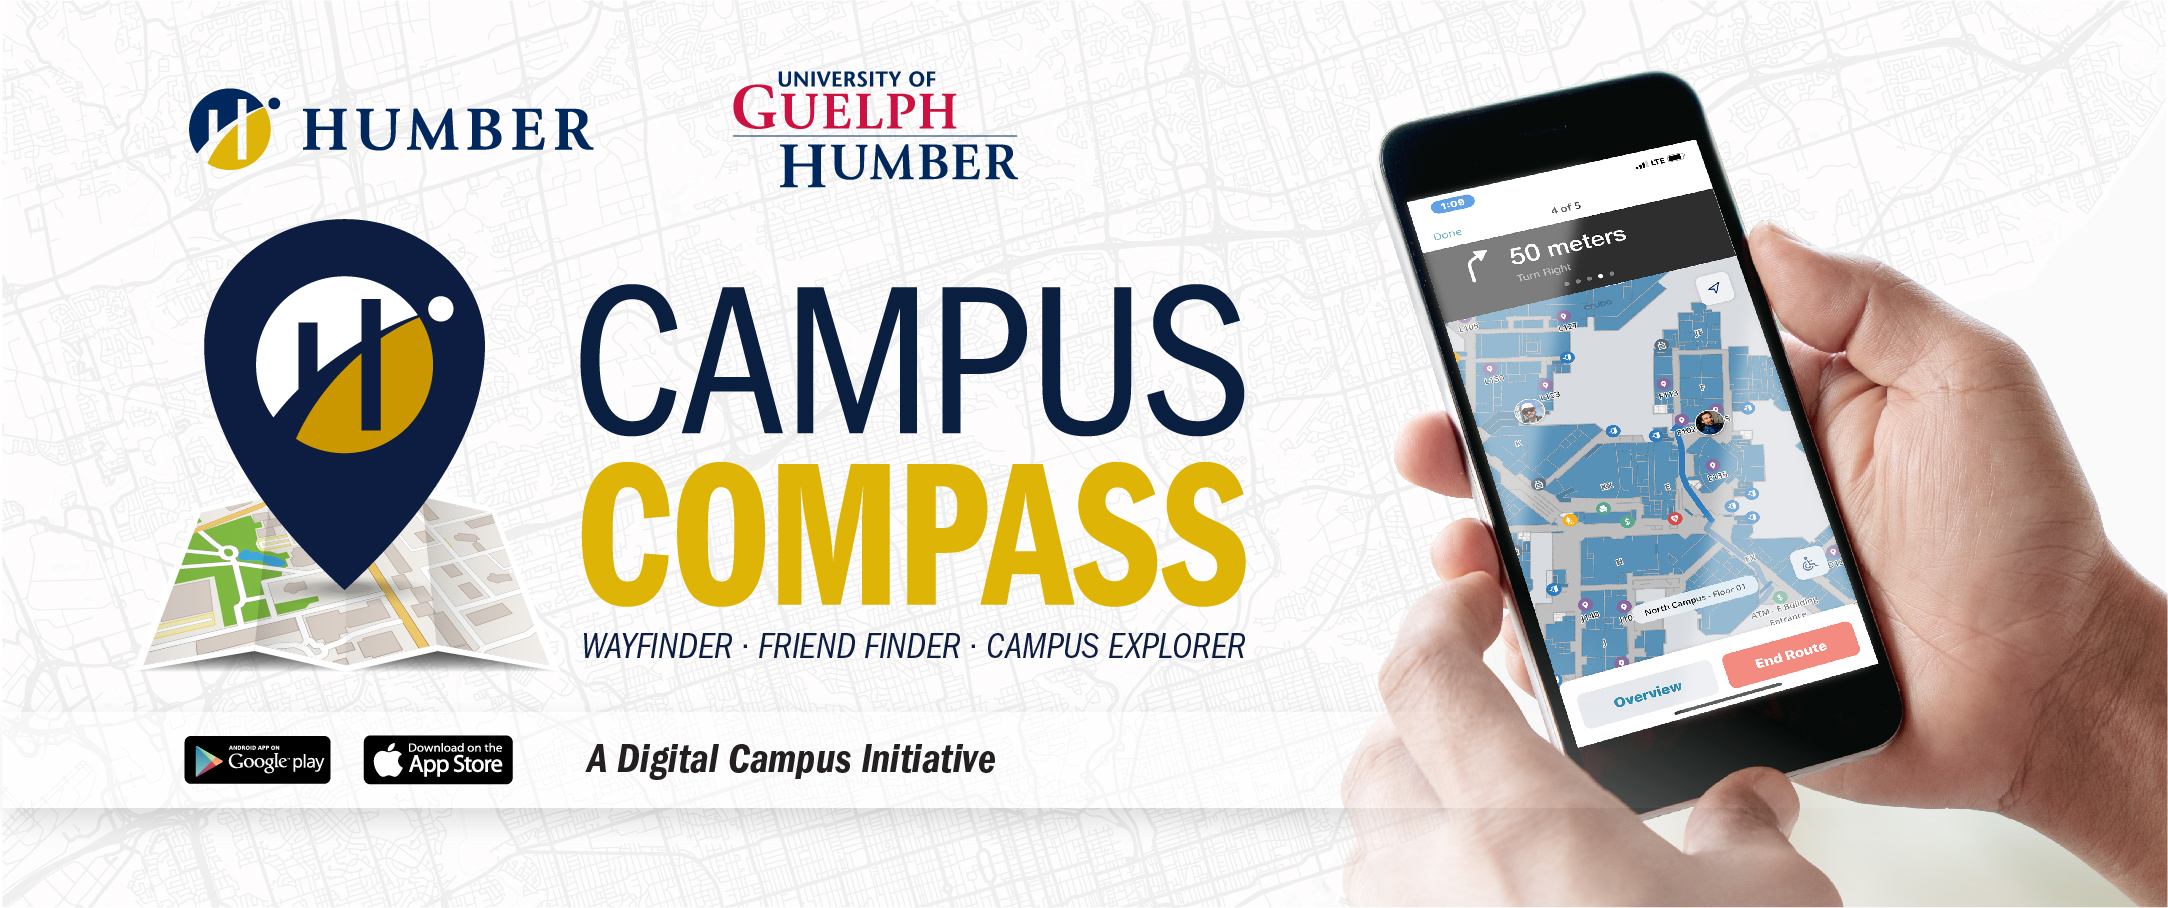 Humber's Campus Compass